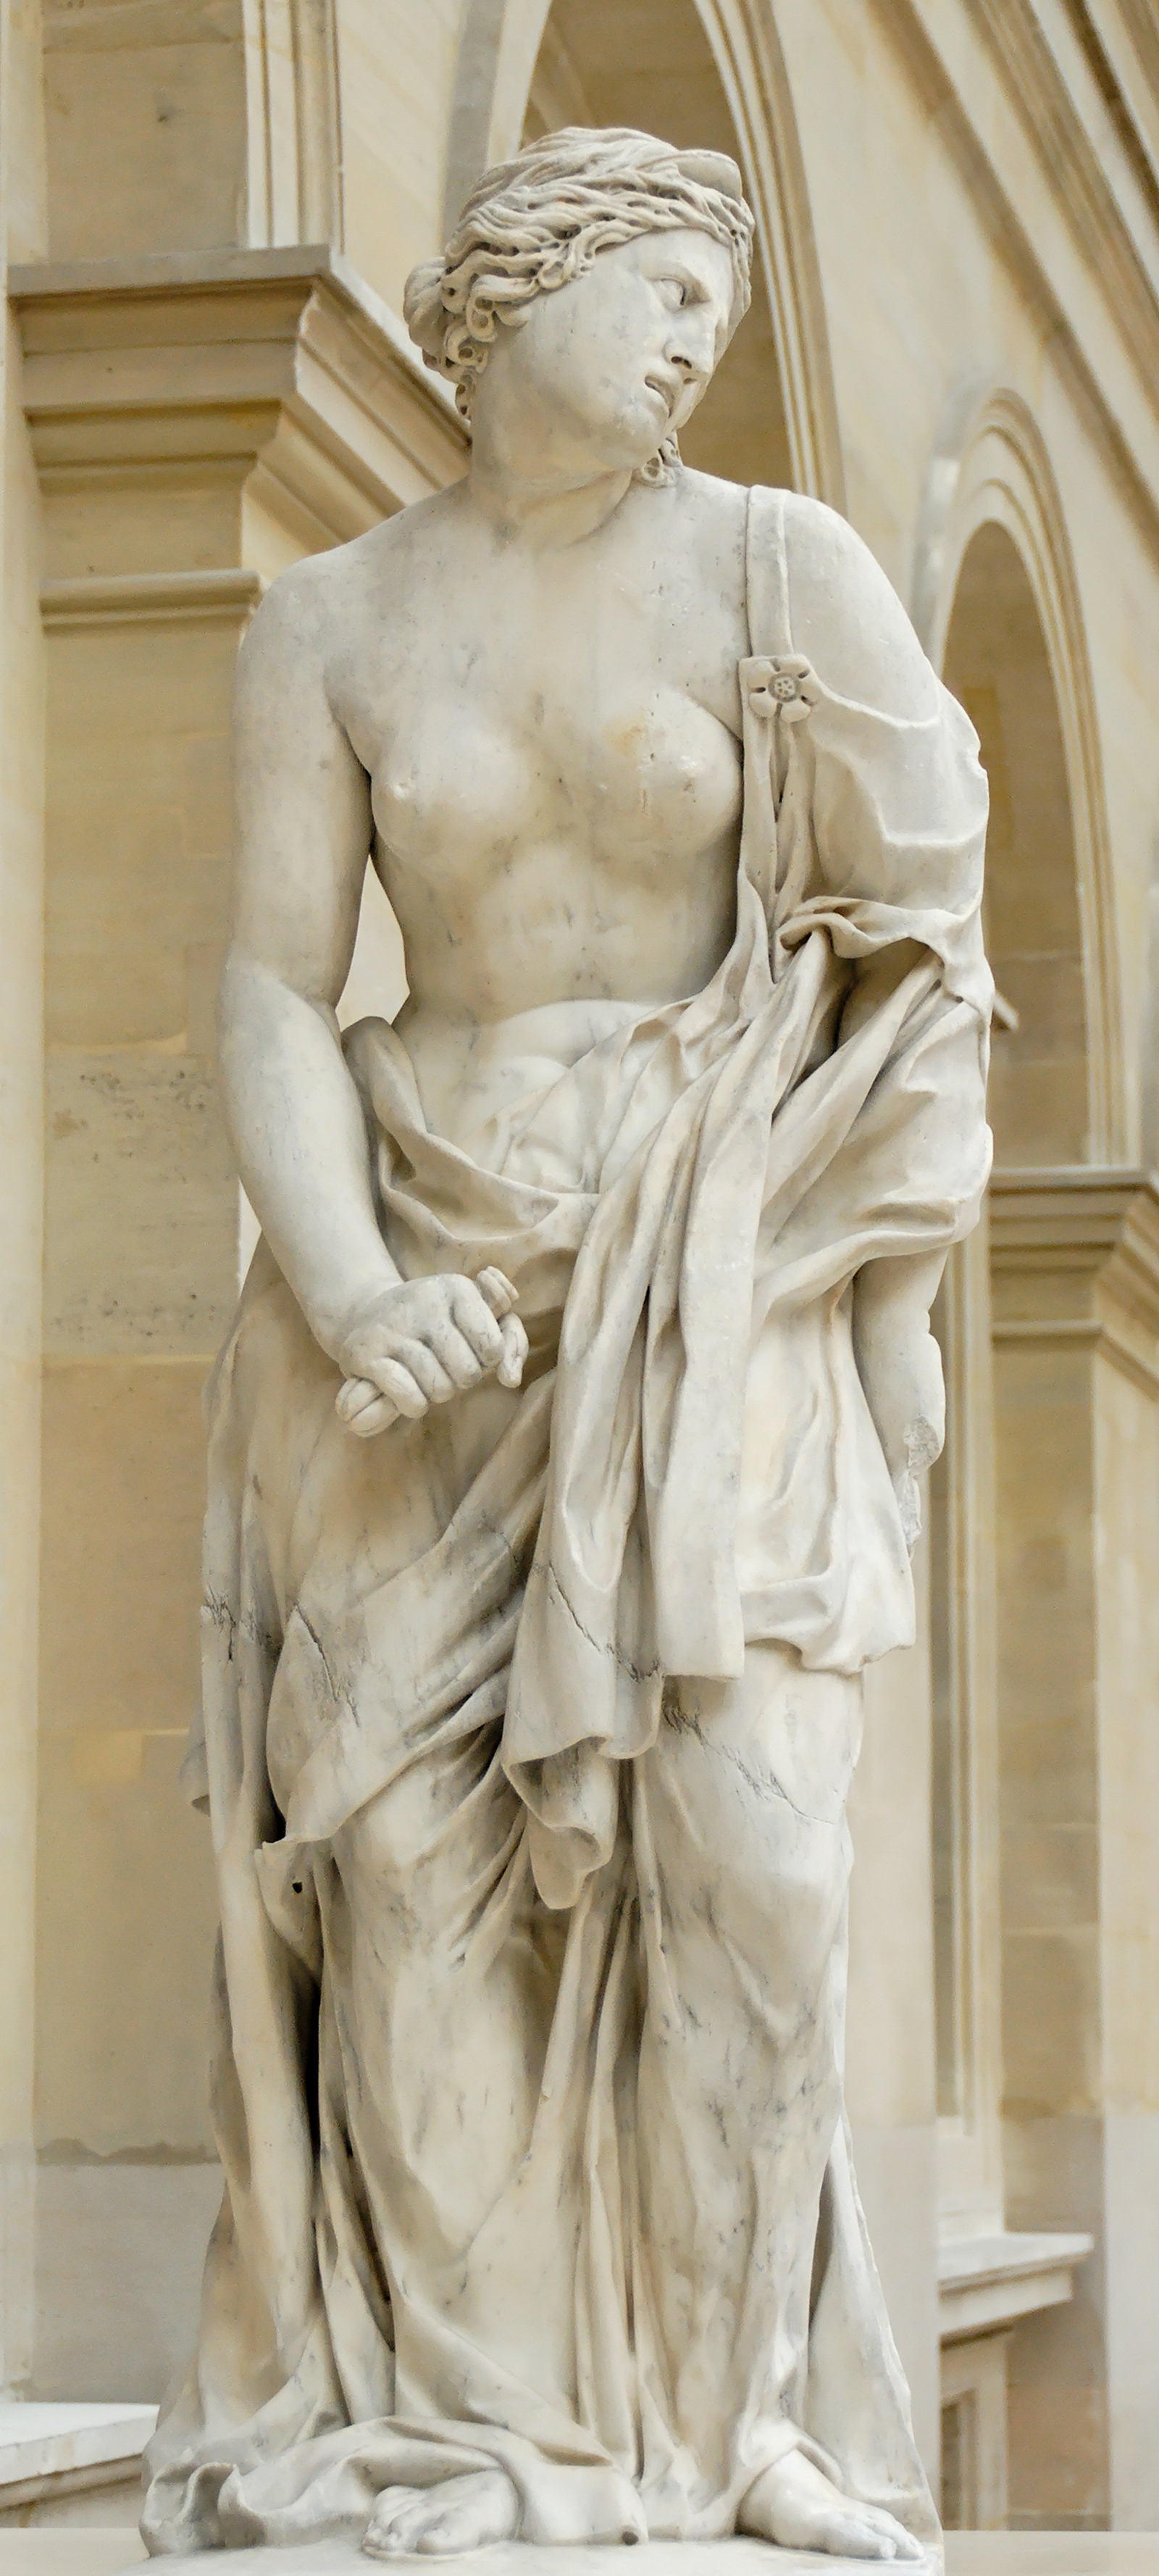 Explain the relationship between Aeneas and Dido. Was the love of Aeneas for Dido only infatuation?